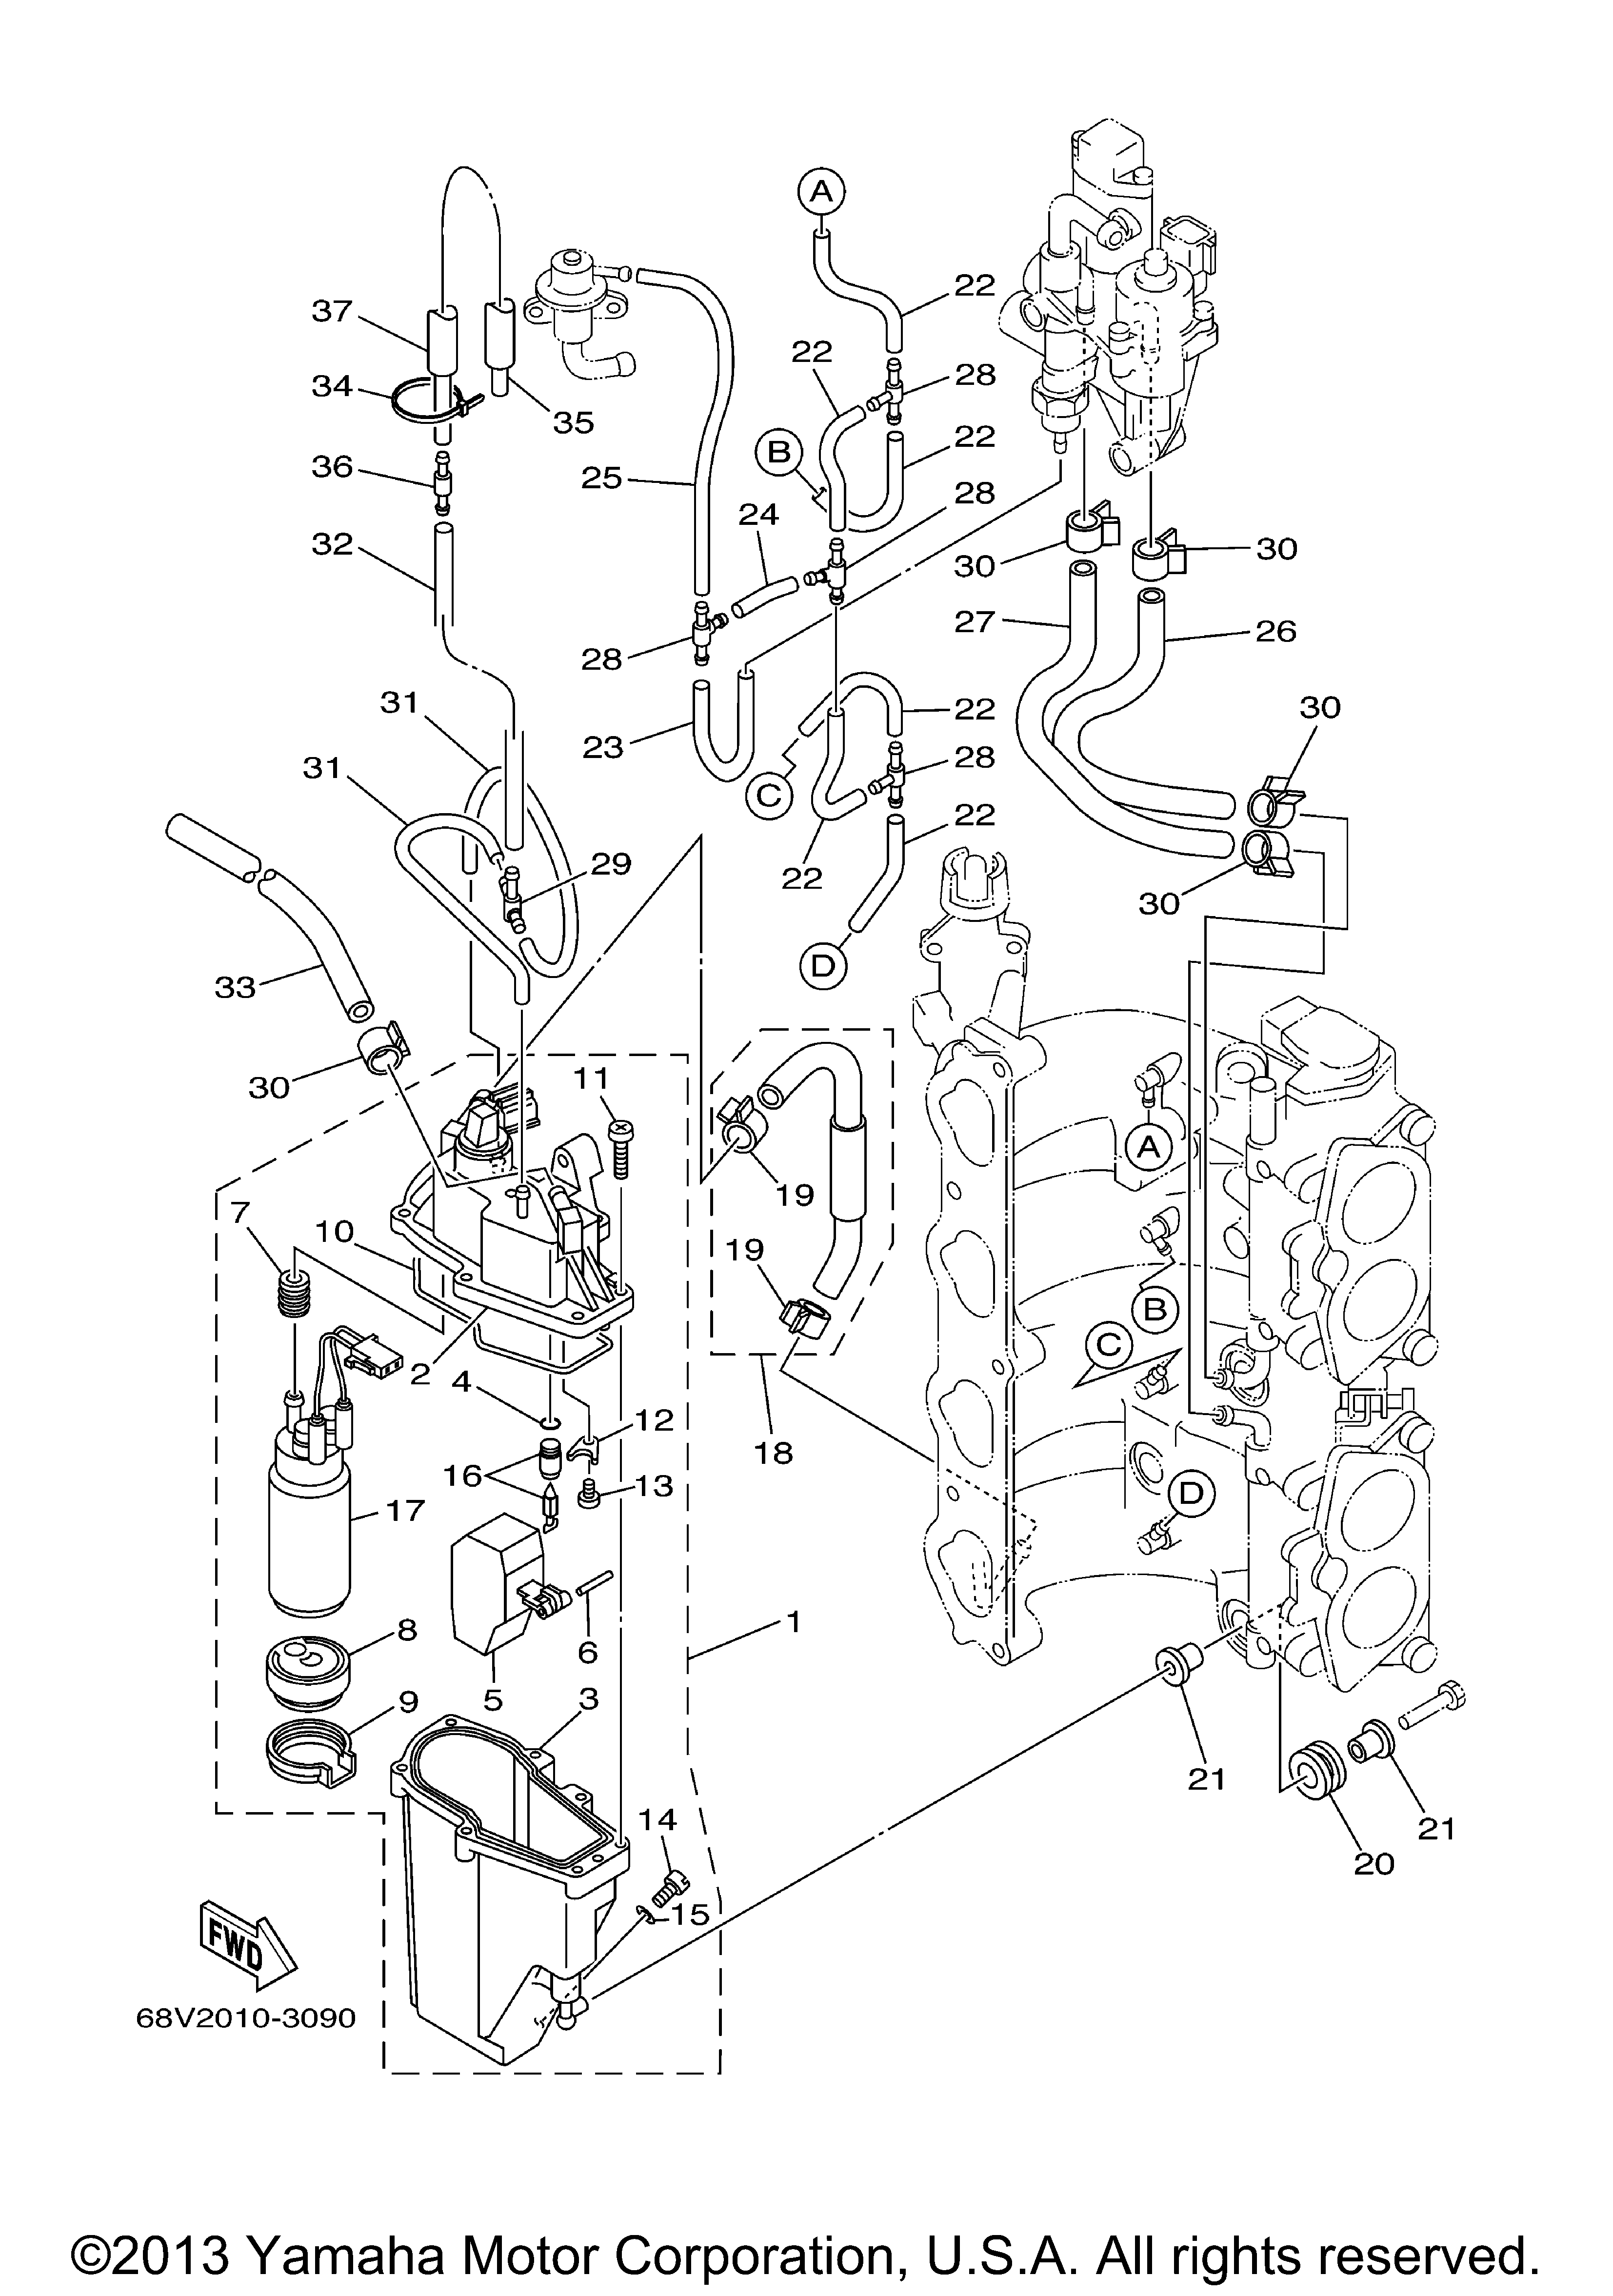 Yamaha F115 Injector Wiring Diagram - Block And Schematic Diagrams •